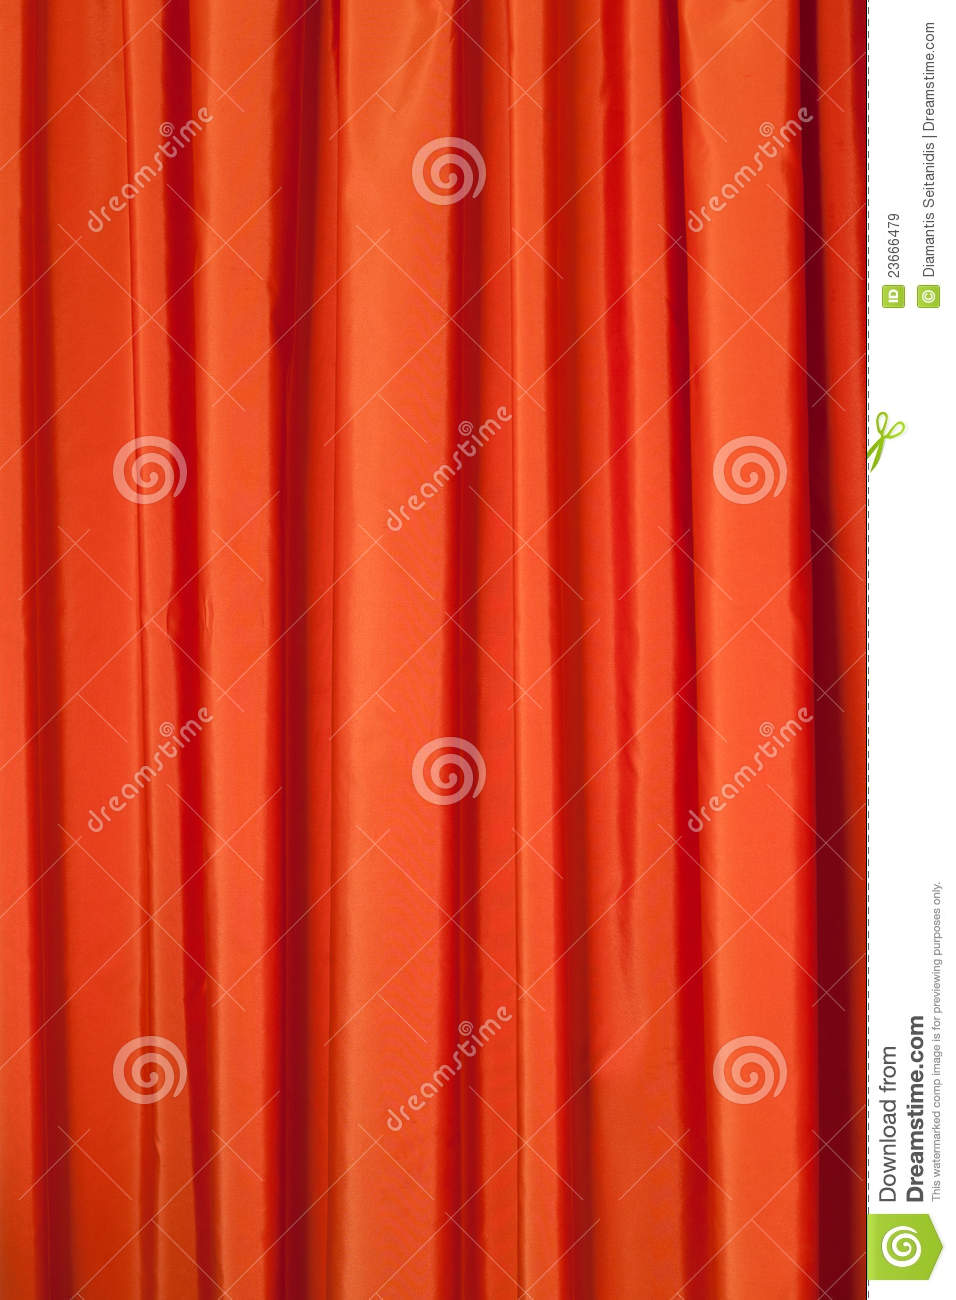 Orange curtains stock image. Image of drapes, opera ...